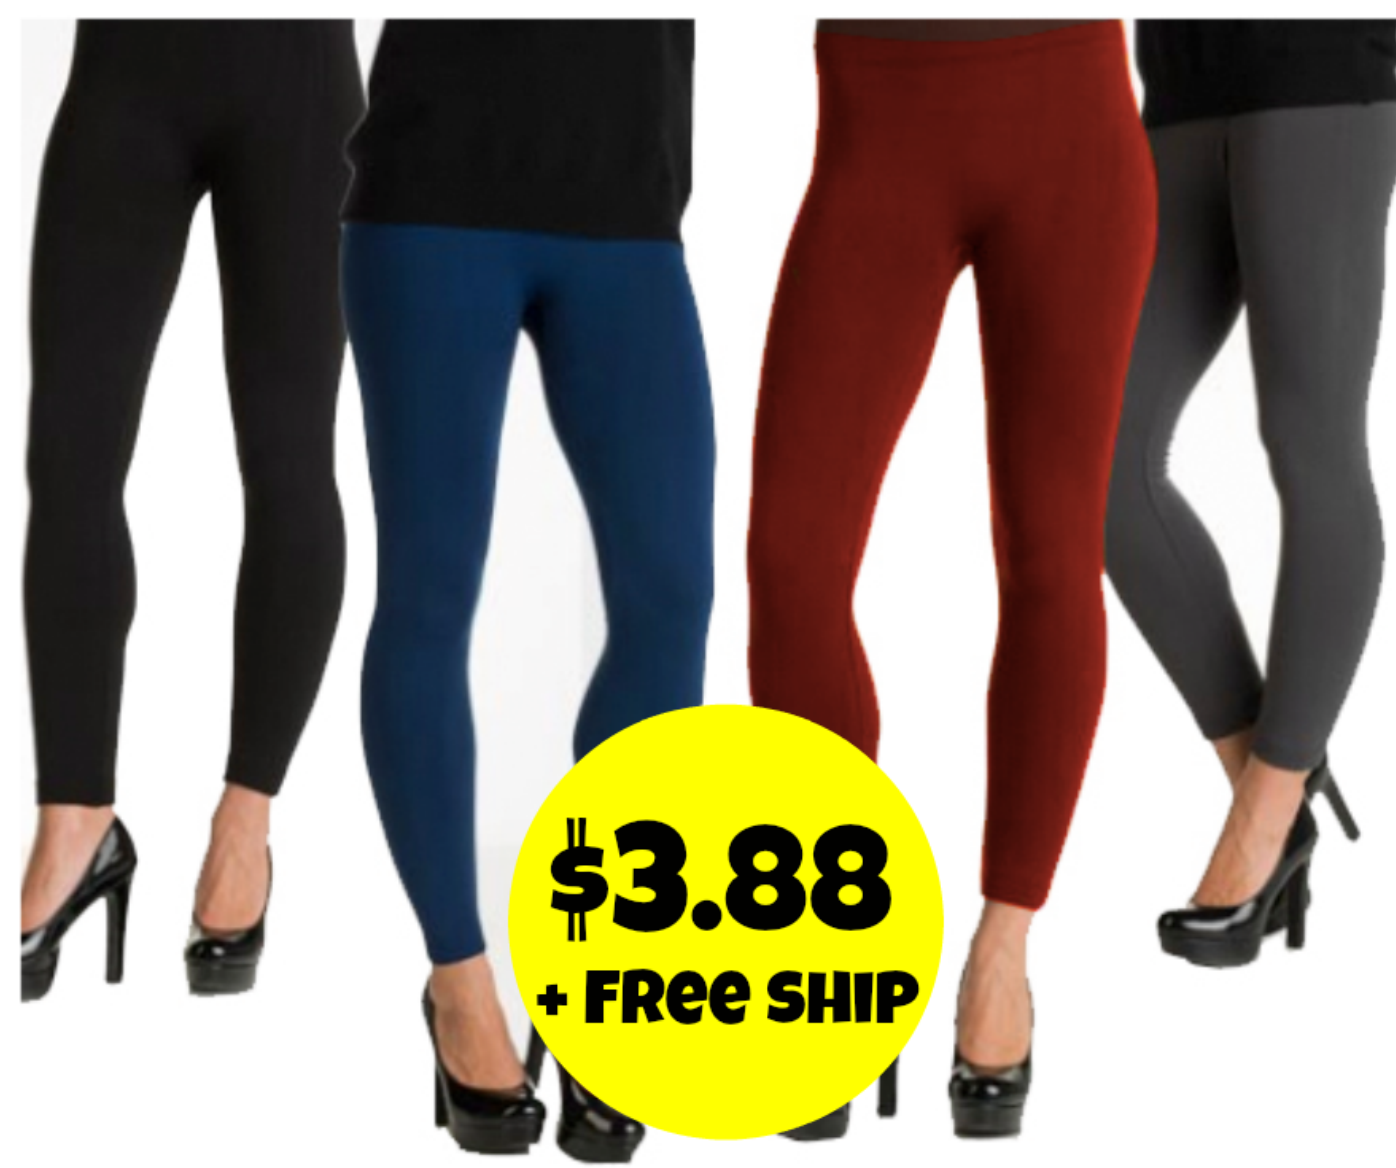 http://www.thebinderladies.com/2014/11/gearxs-fleece-lined-leggings-388-free.html